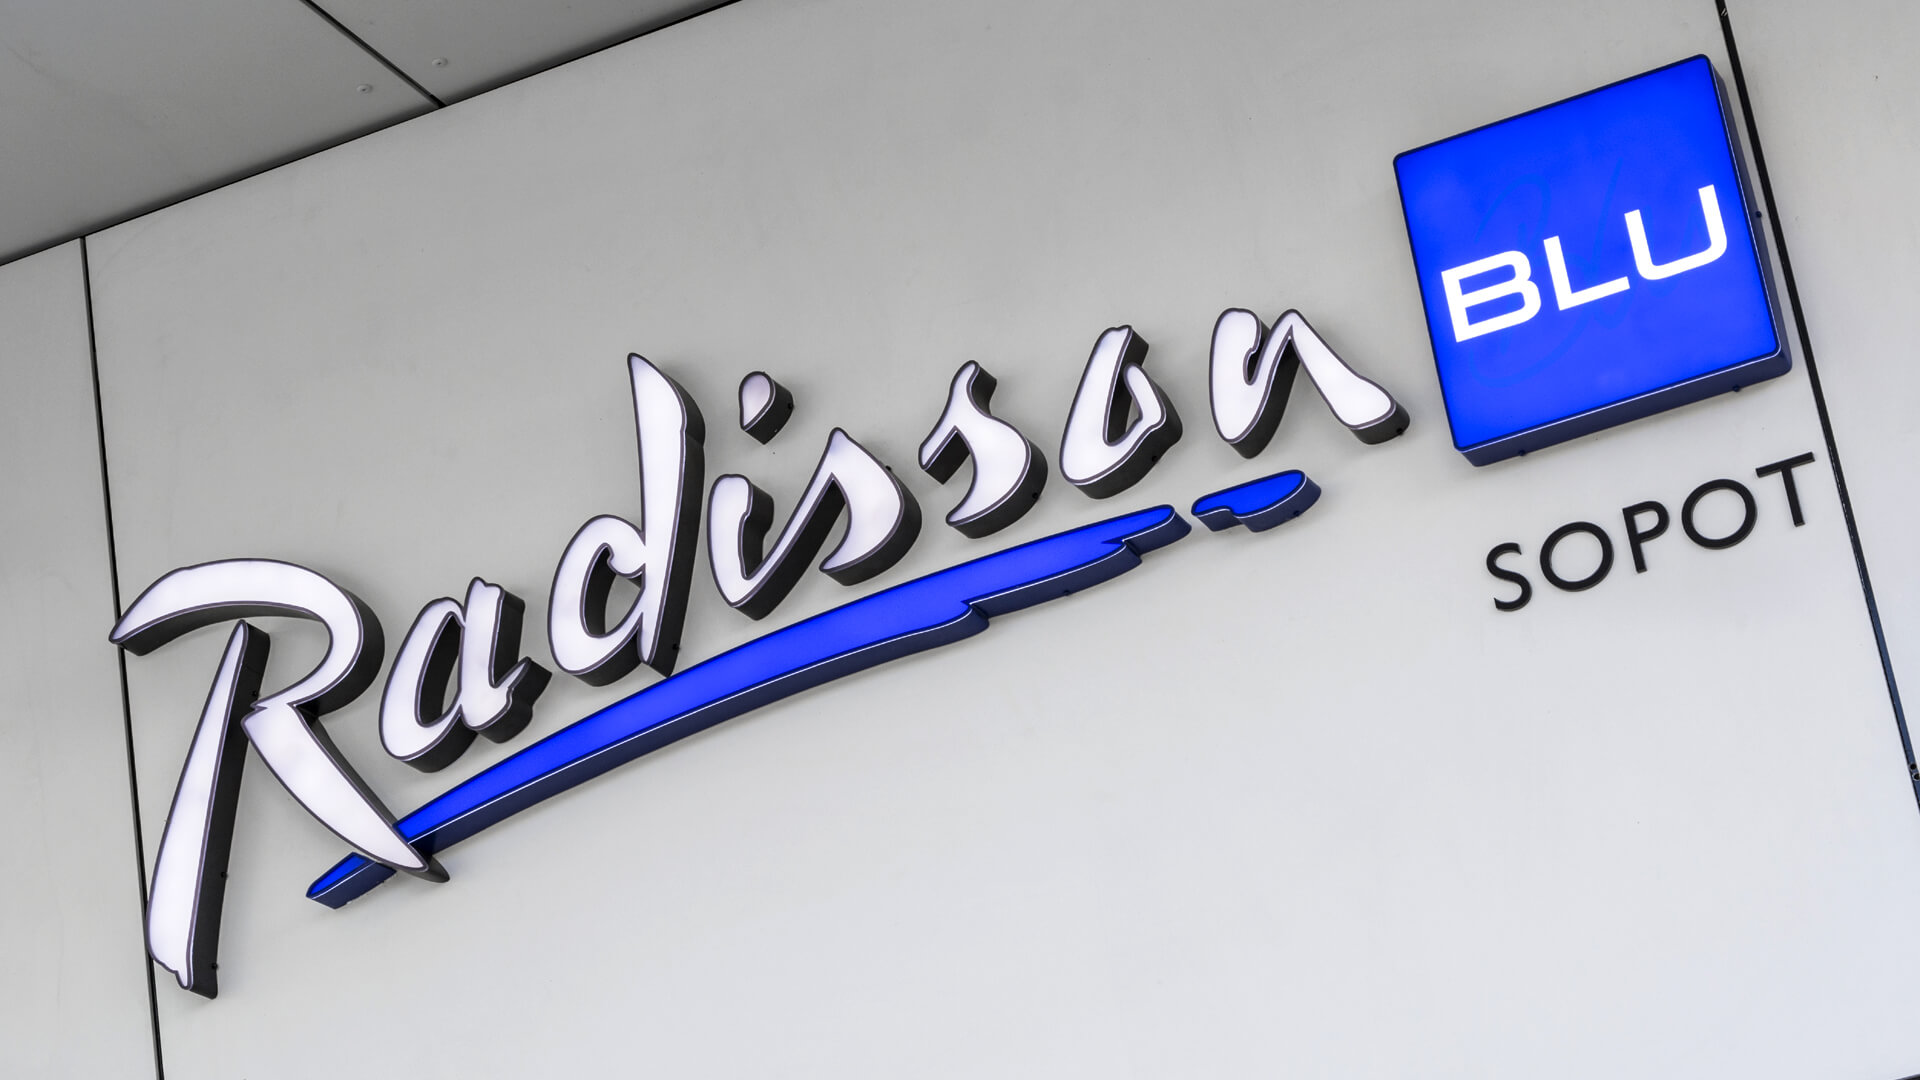 radisson-litery-3d-led - litery-3d-przy-wejsciu-led-letters-logo-radison-poland-sopot-3d-chanel-letters